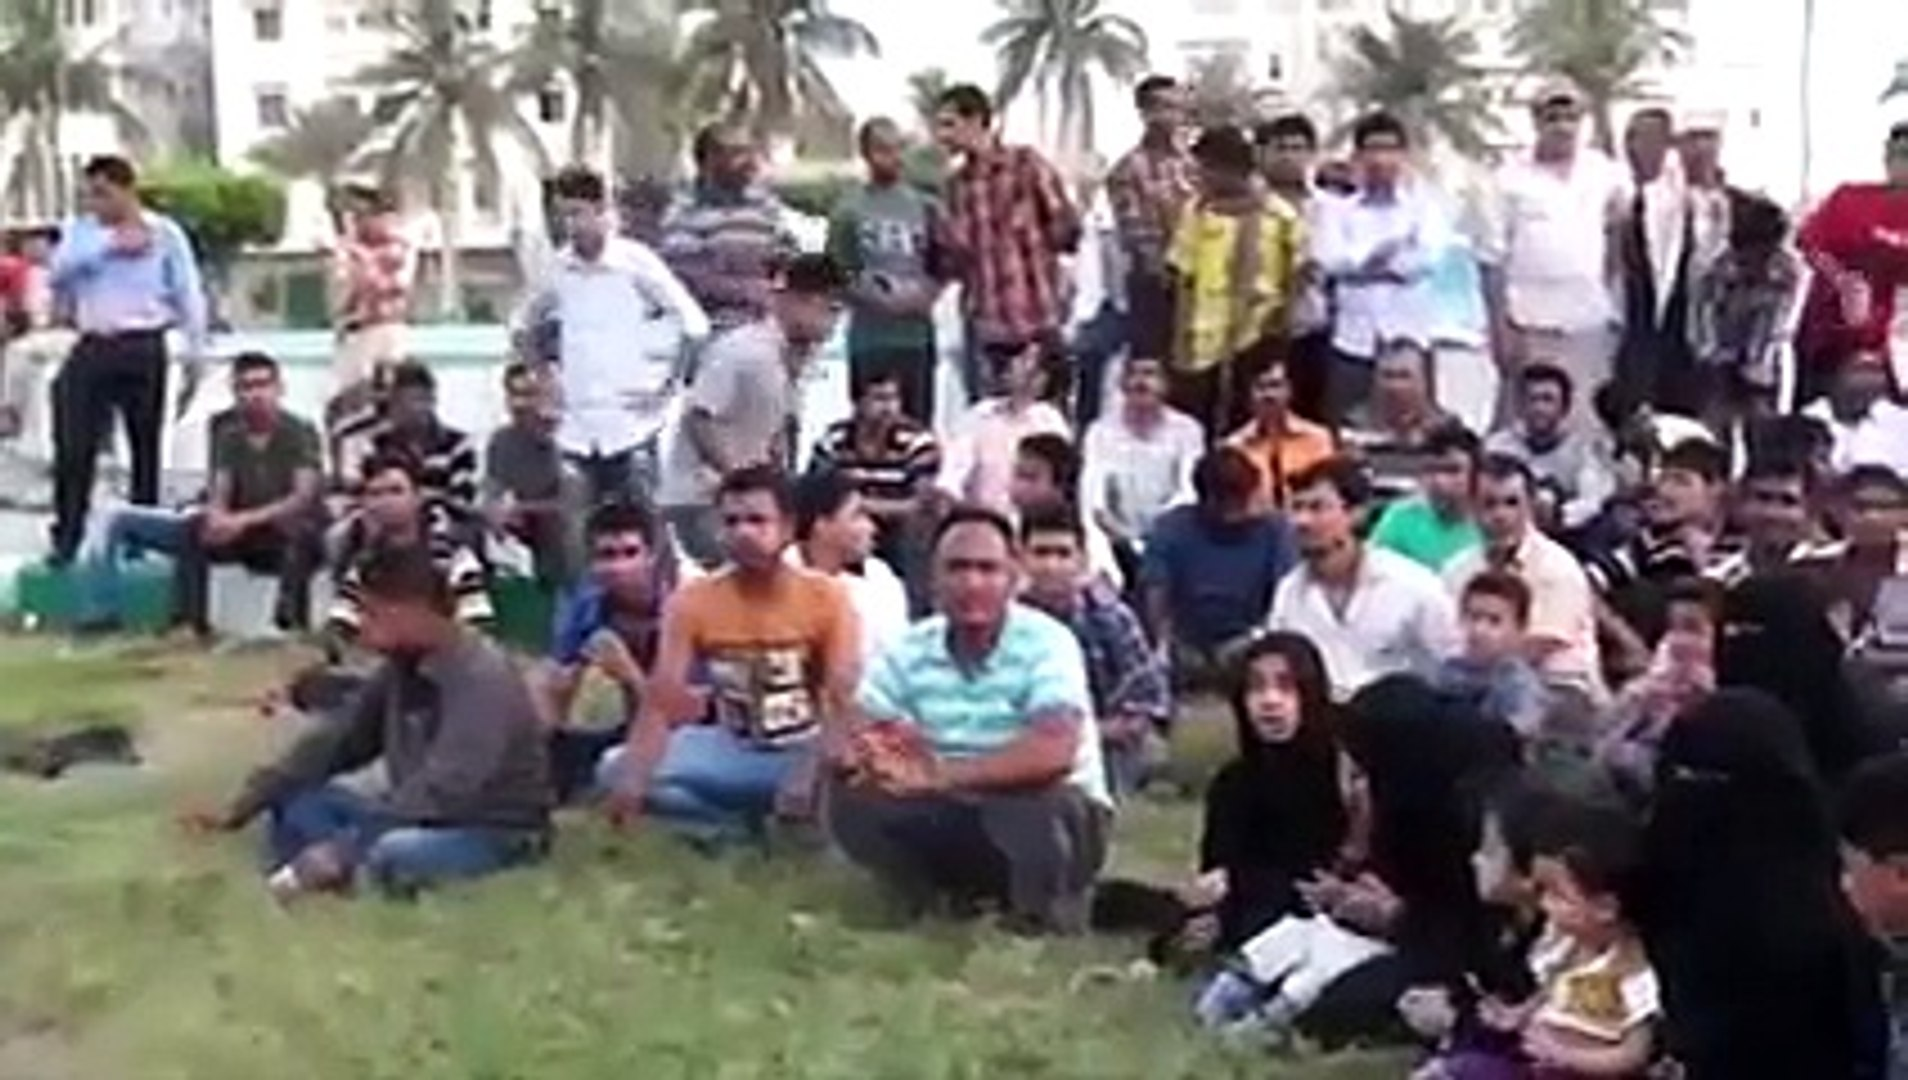 BANGLADESHI WORKERS AND THERE FAMILY IN YEMEN & THEY BEG HELP TO BANGLADESH PRIME MINISTER